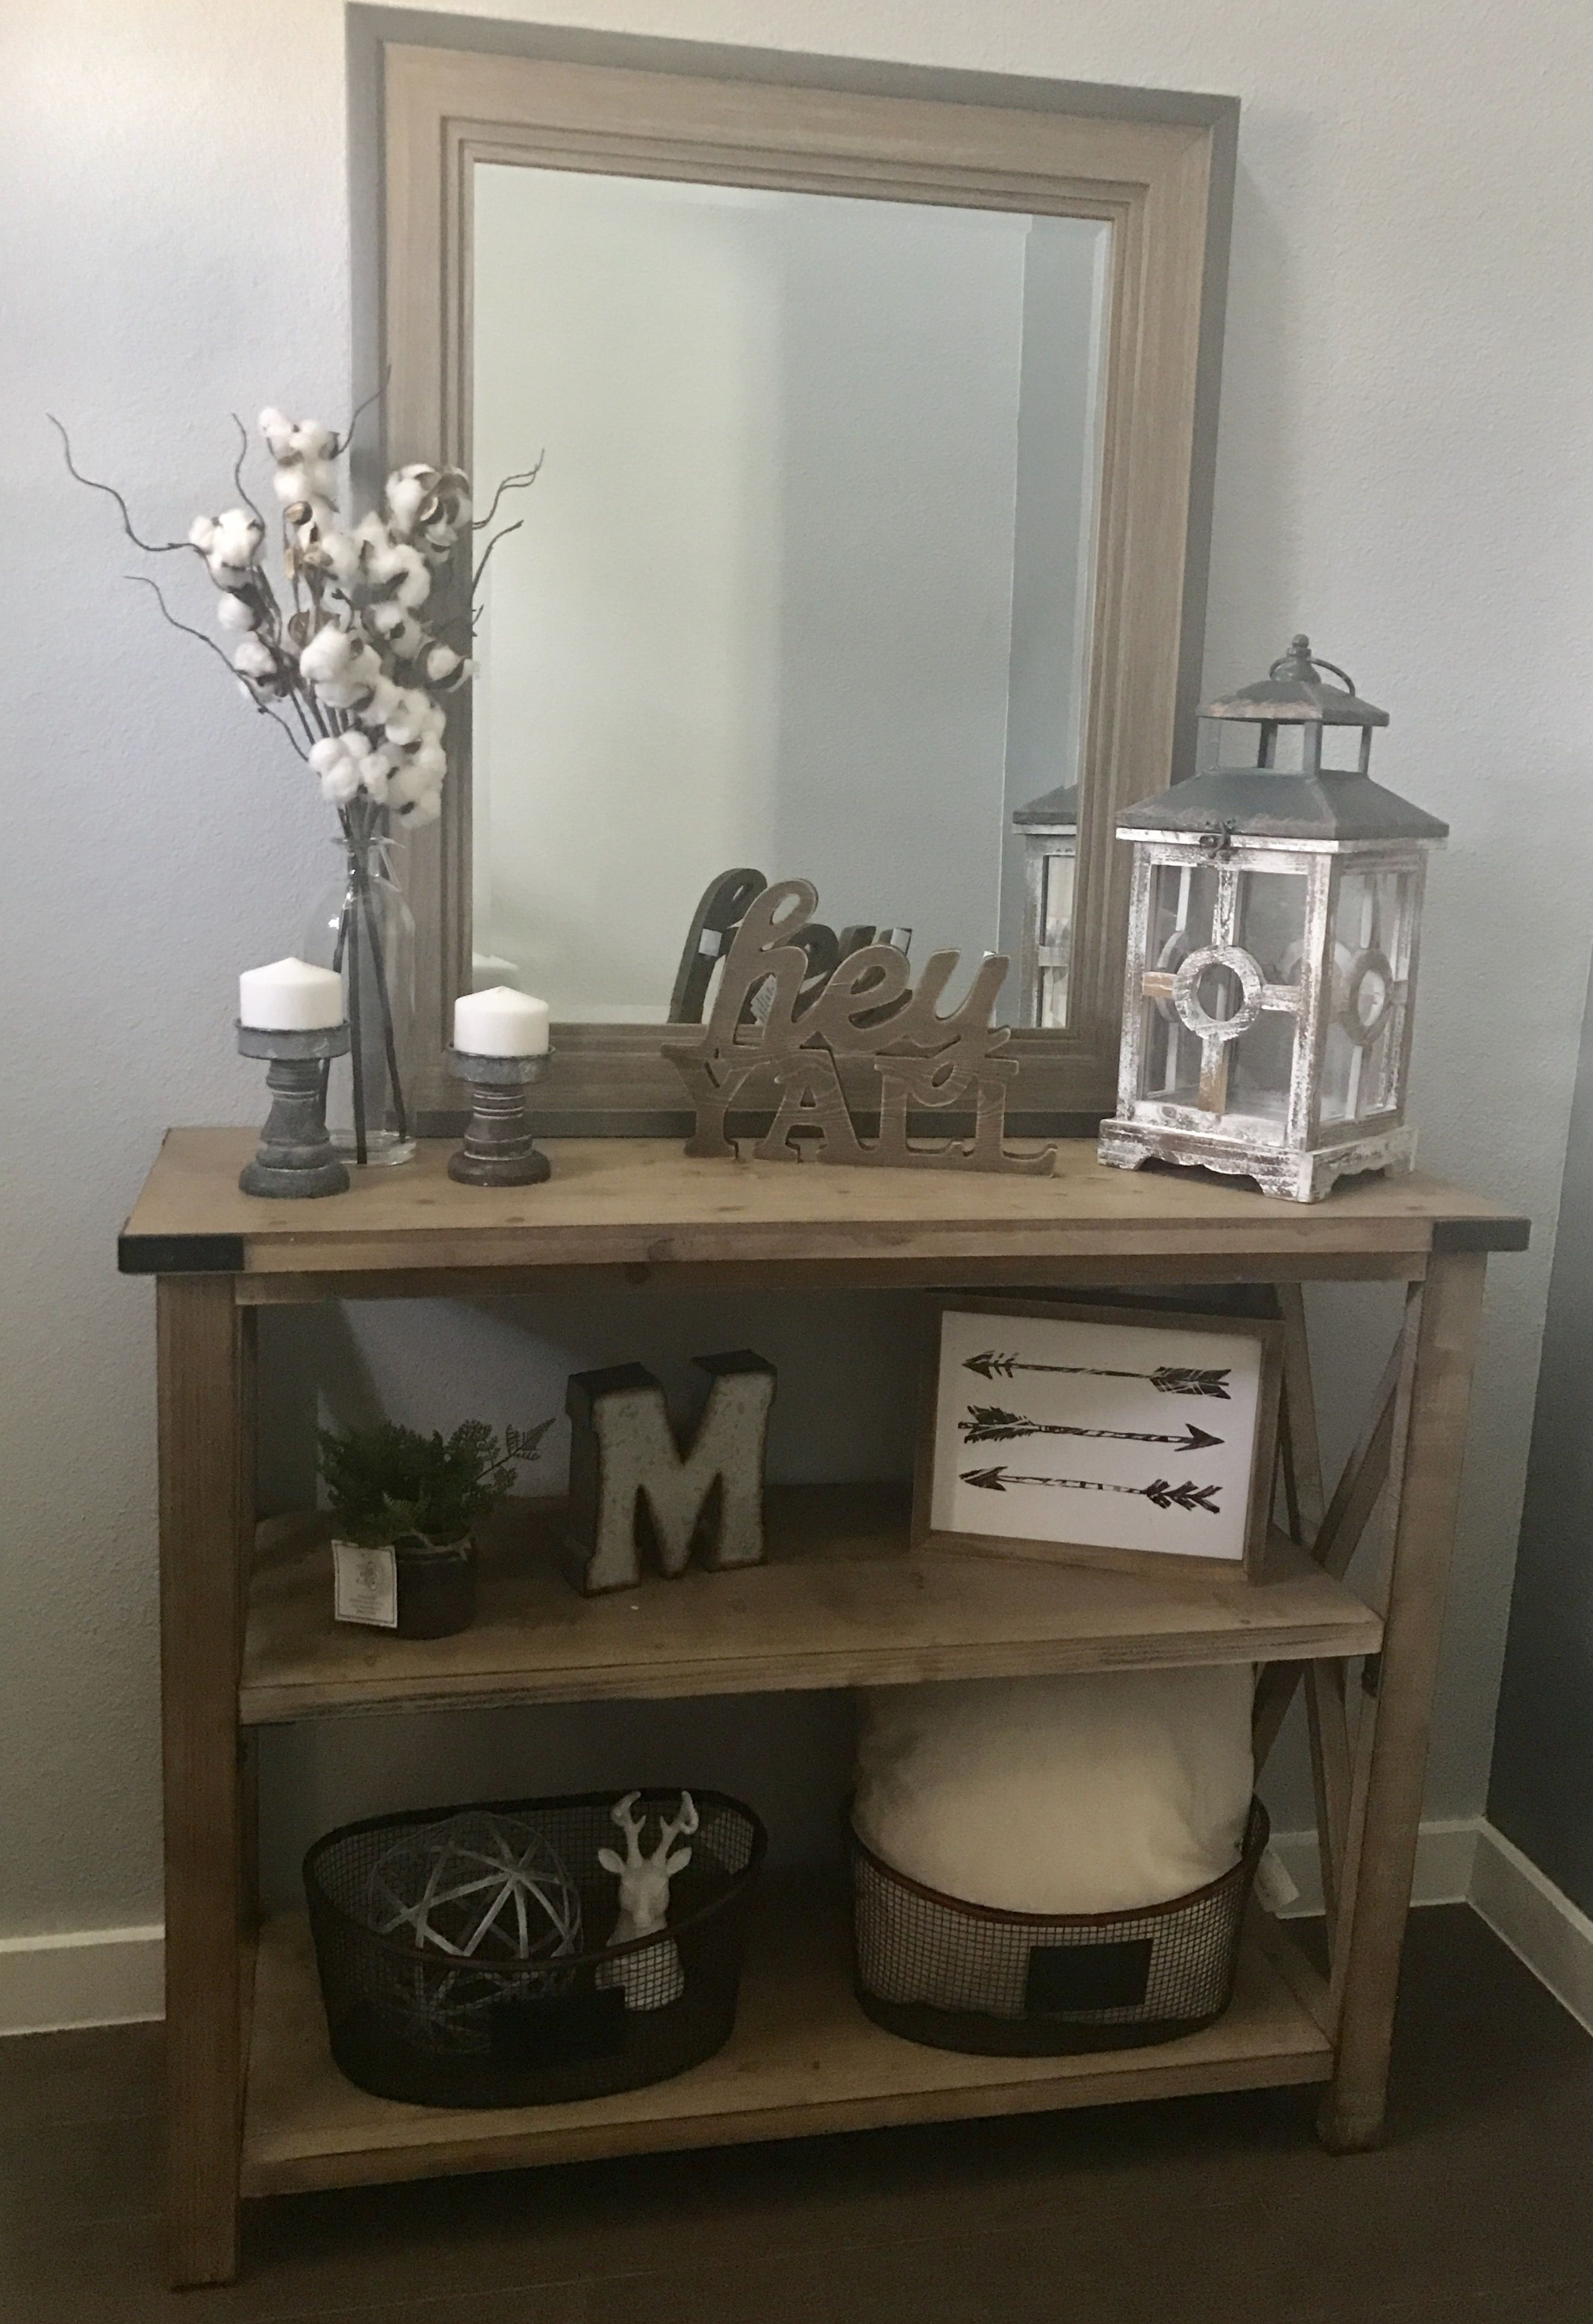 new modern farmhouse entry way console table decor mcmillen home better homes and gardens accent rustic gray large white tablecloth small storage cupboard end marble balcony